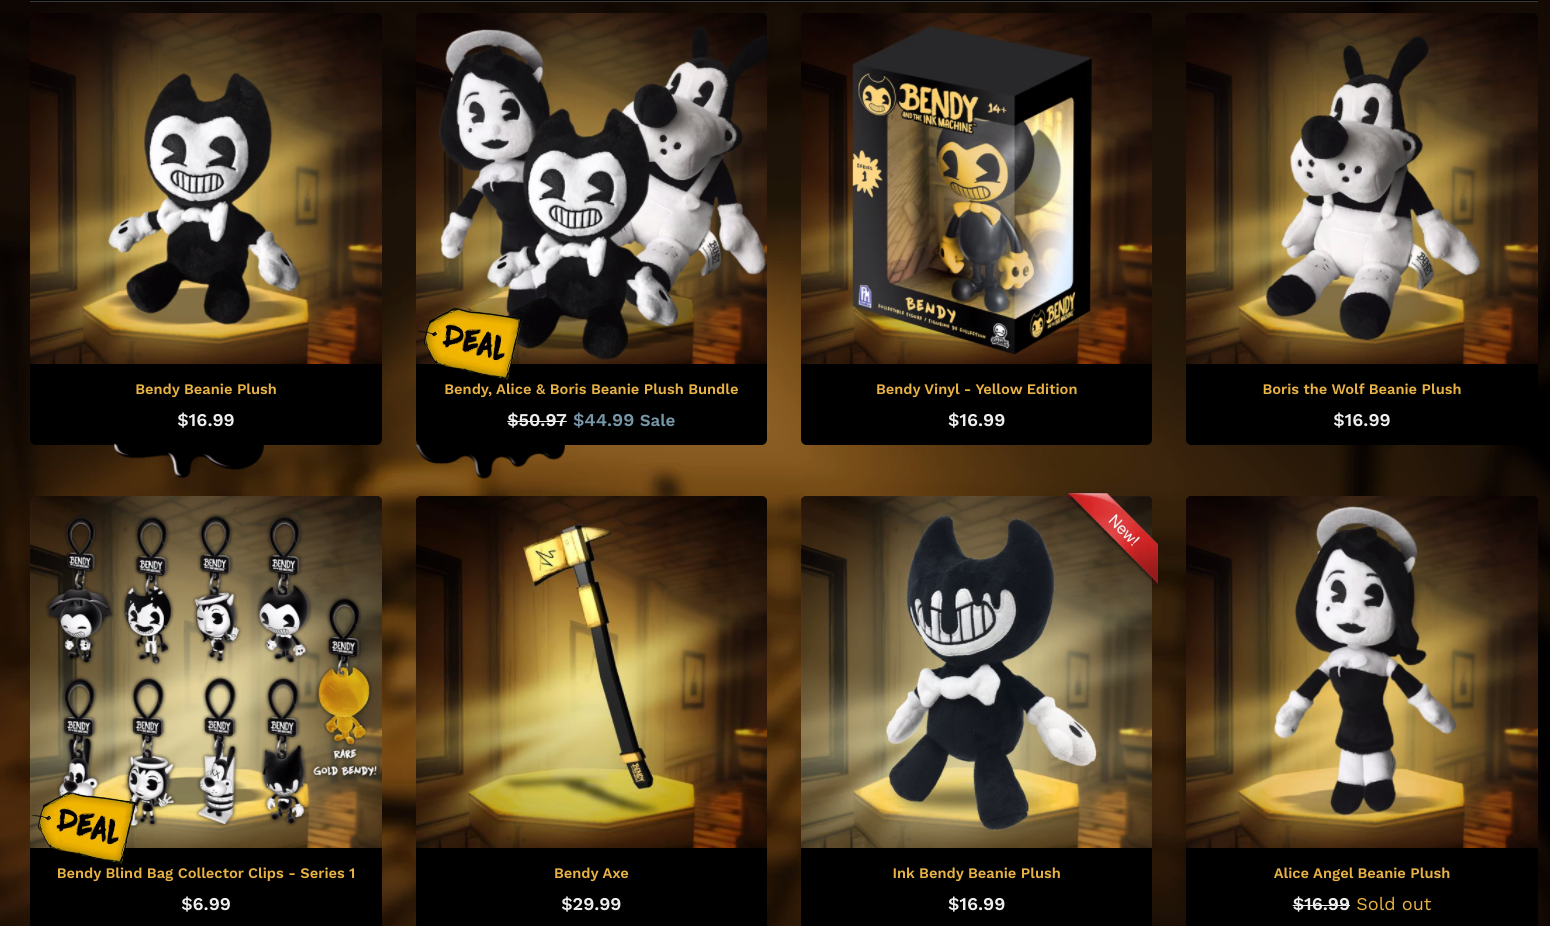 Bendy has seen all kinds of associated merch for sale